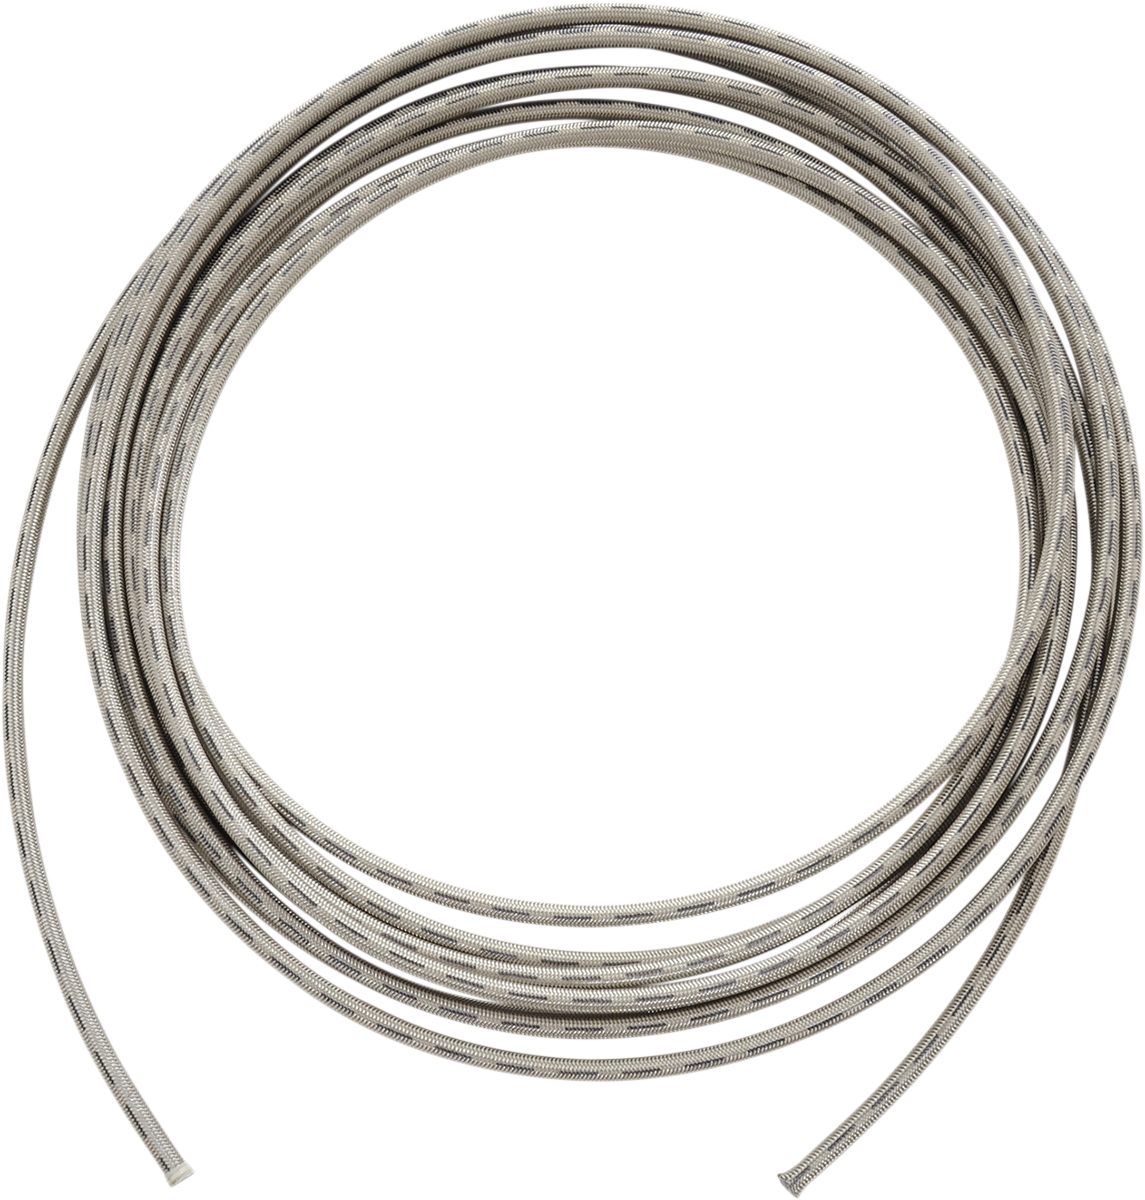 3 Clear-Coated Stainless Steel Braided Hose